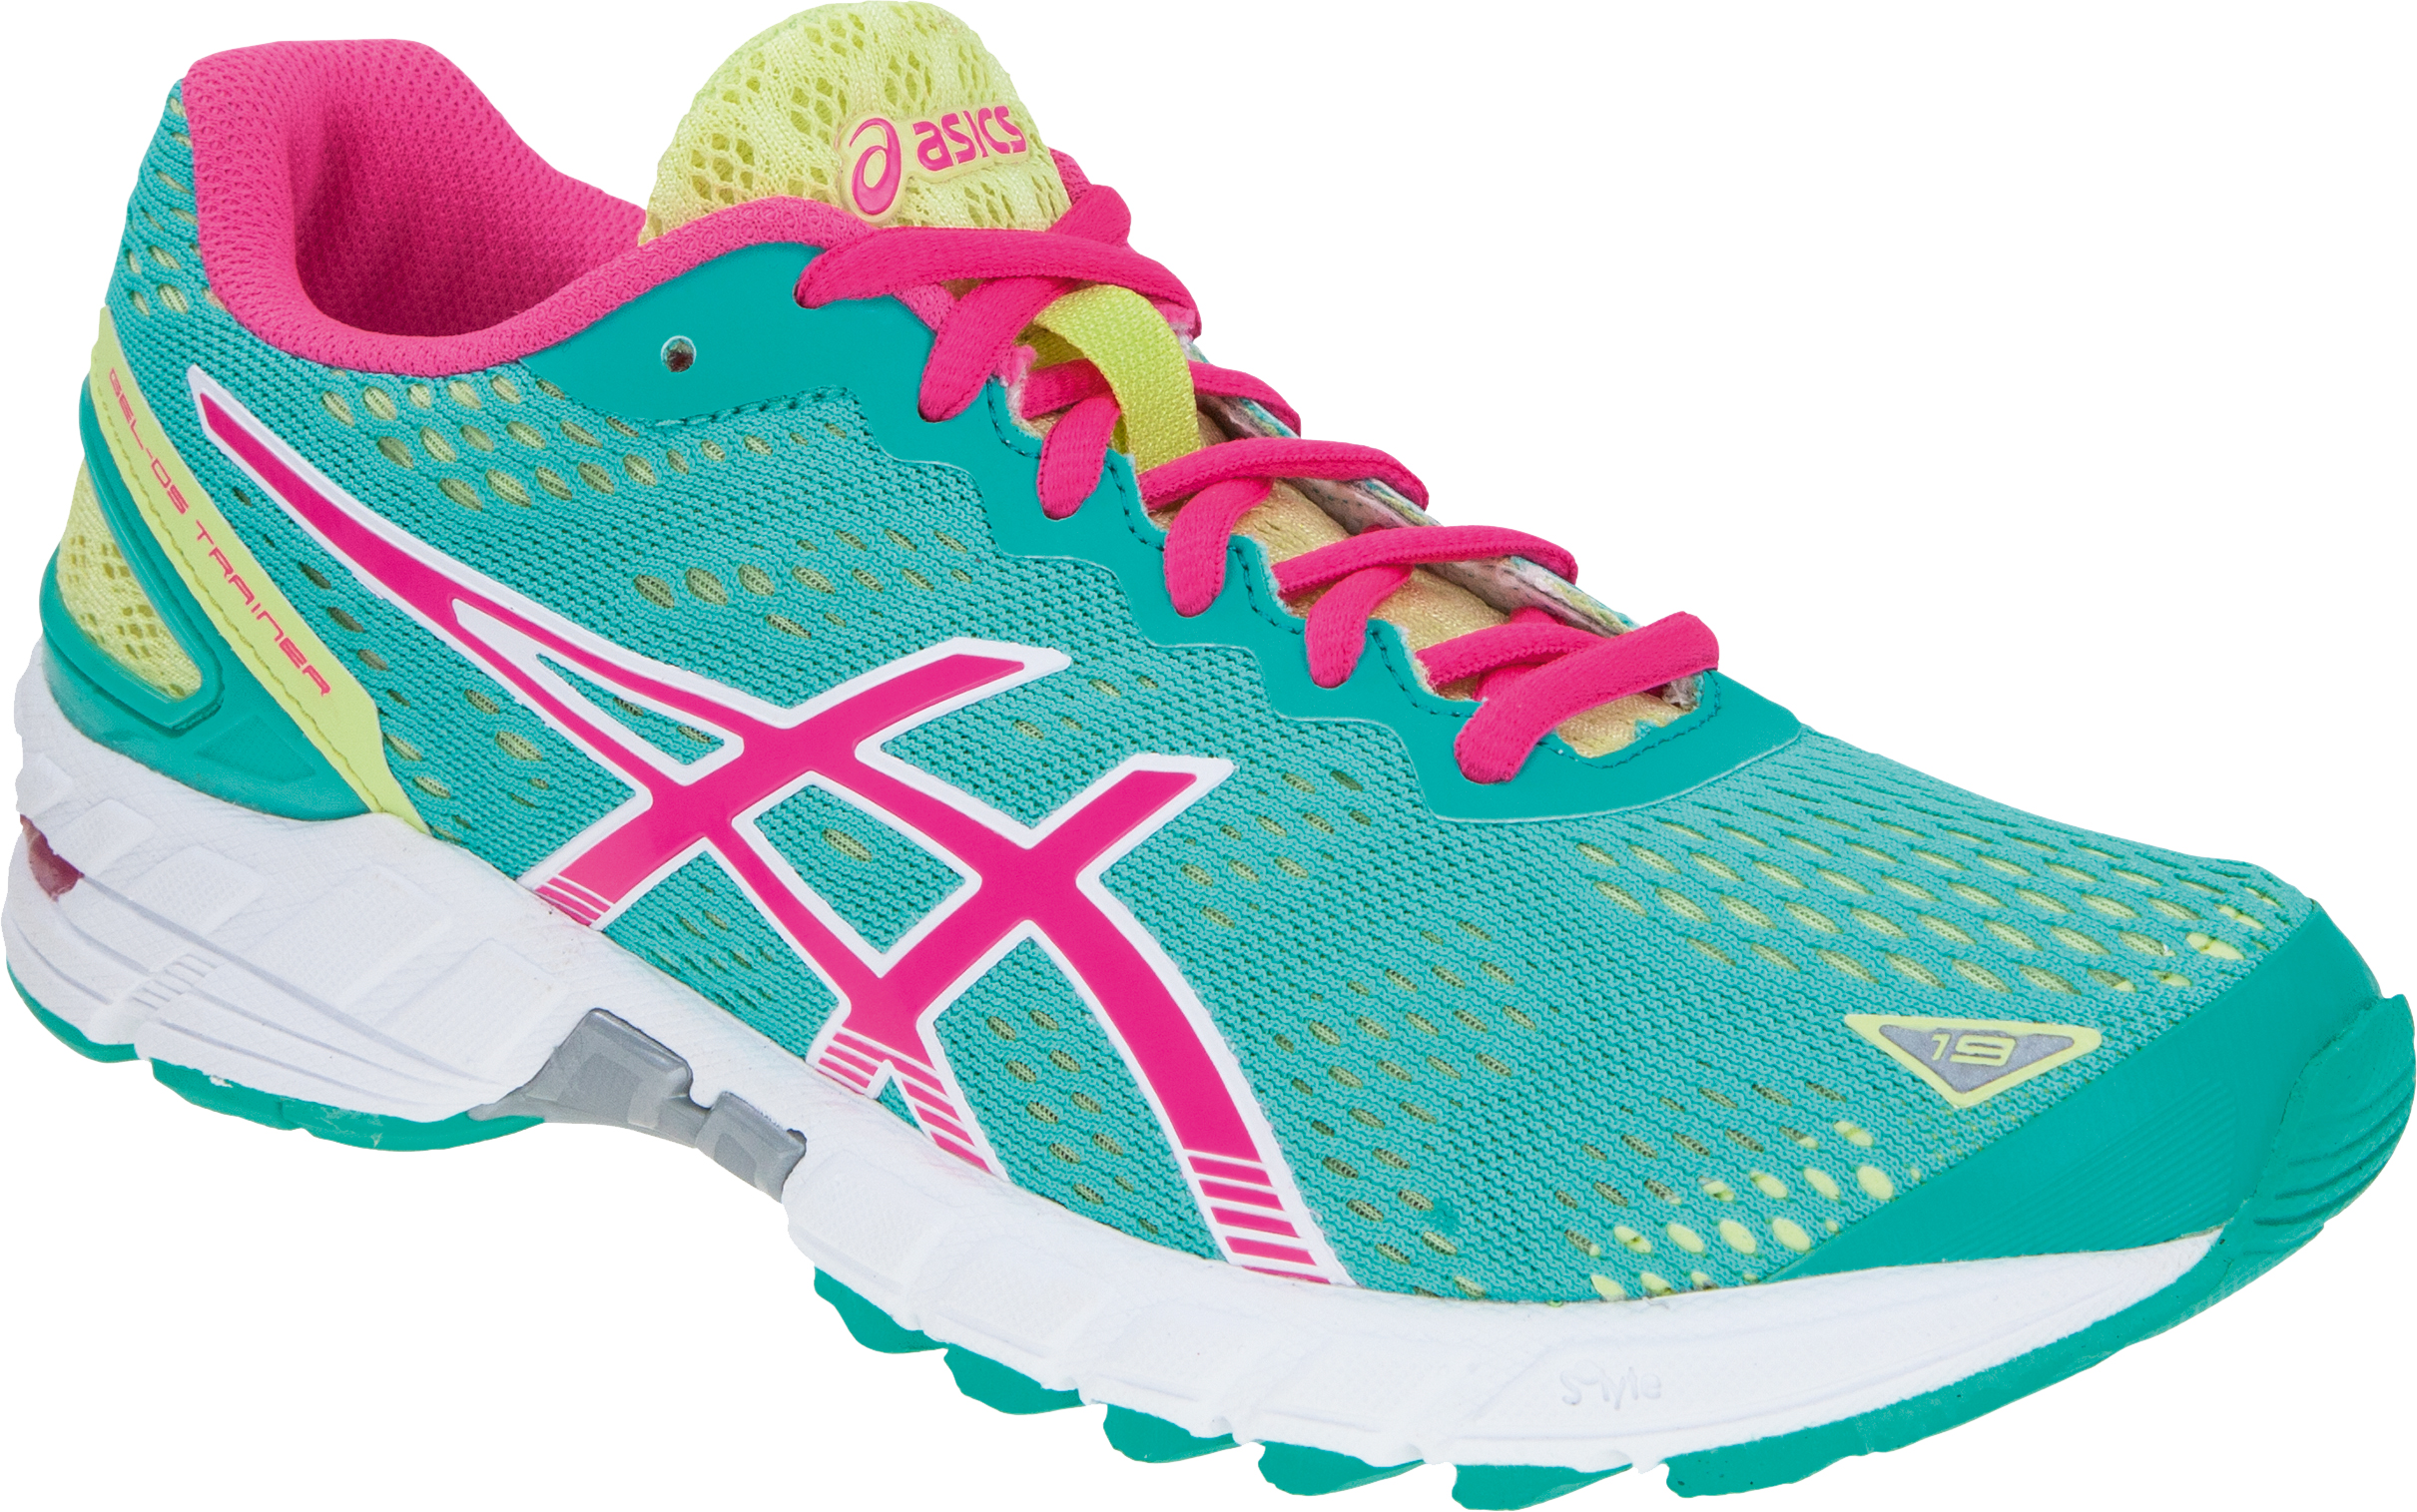 Asics Gel Trainer 19 zapatos